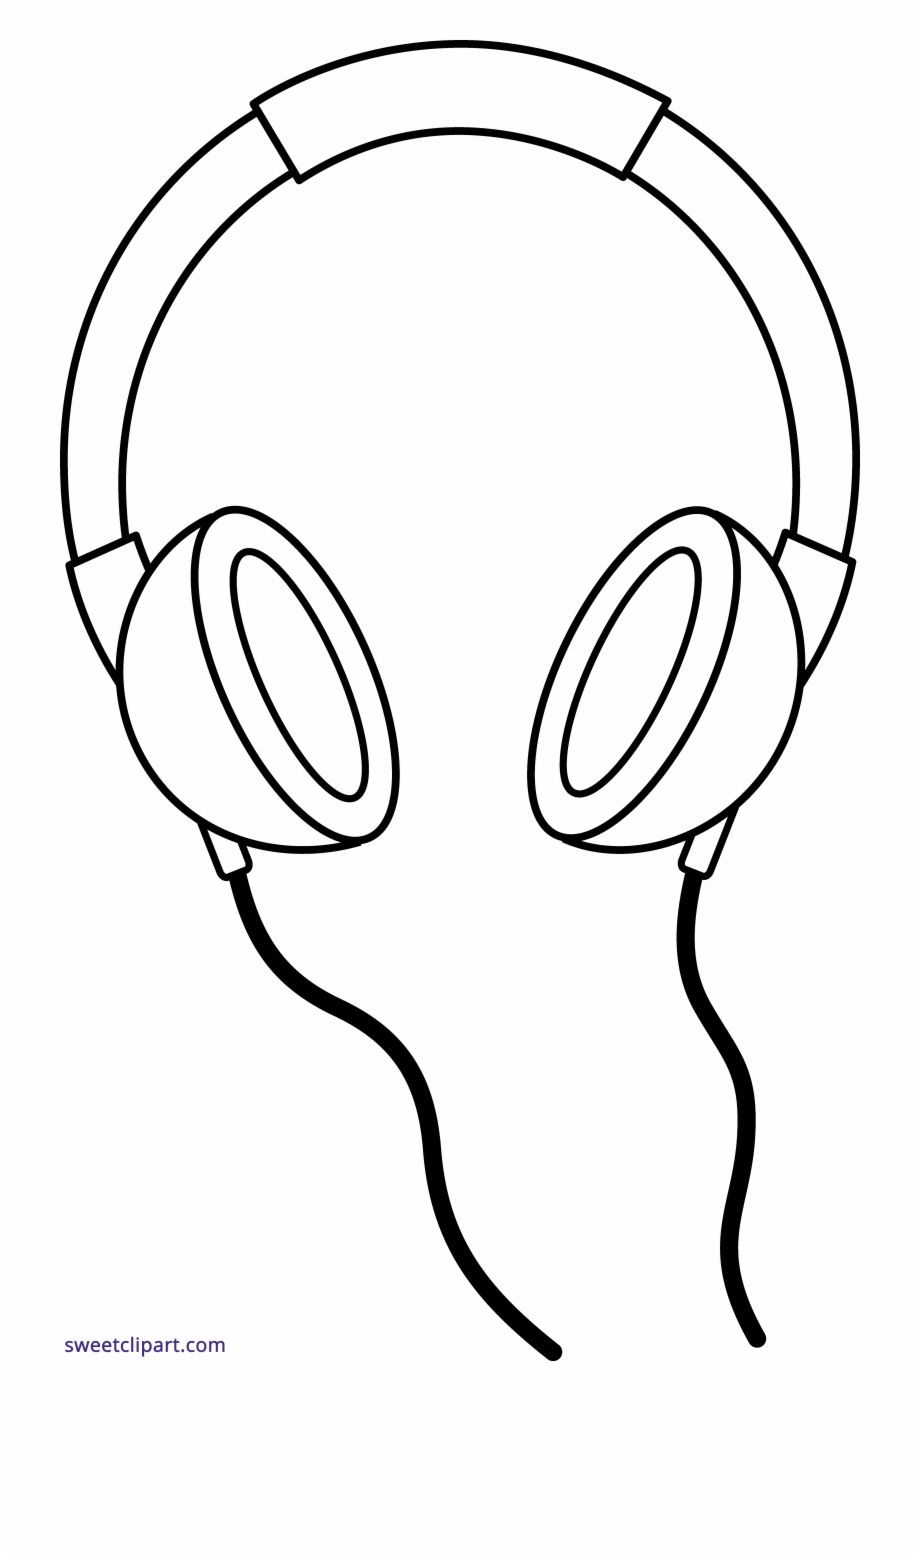 Headphones book clipart banner transparent stock Collection Of Free Hemaphaein Clipart Headphone Line - Headphones ... banner transparent stock